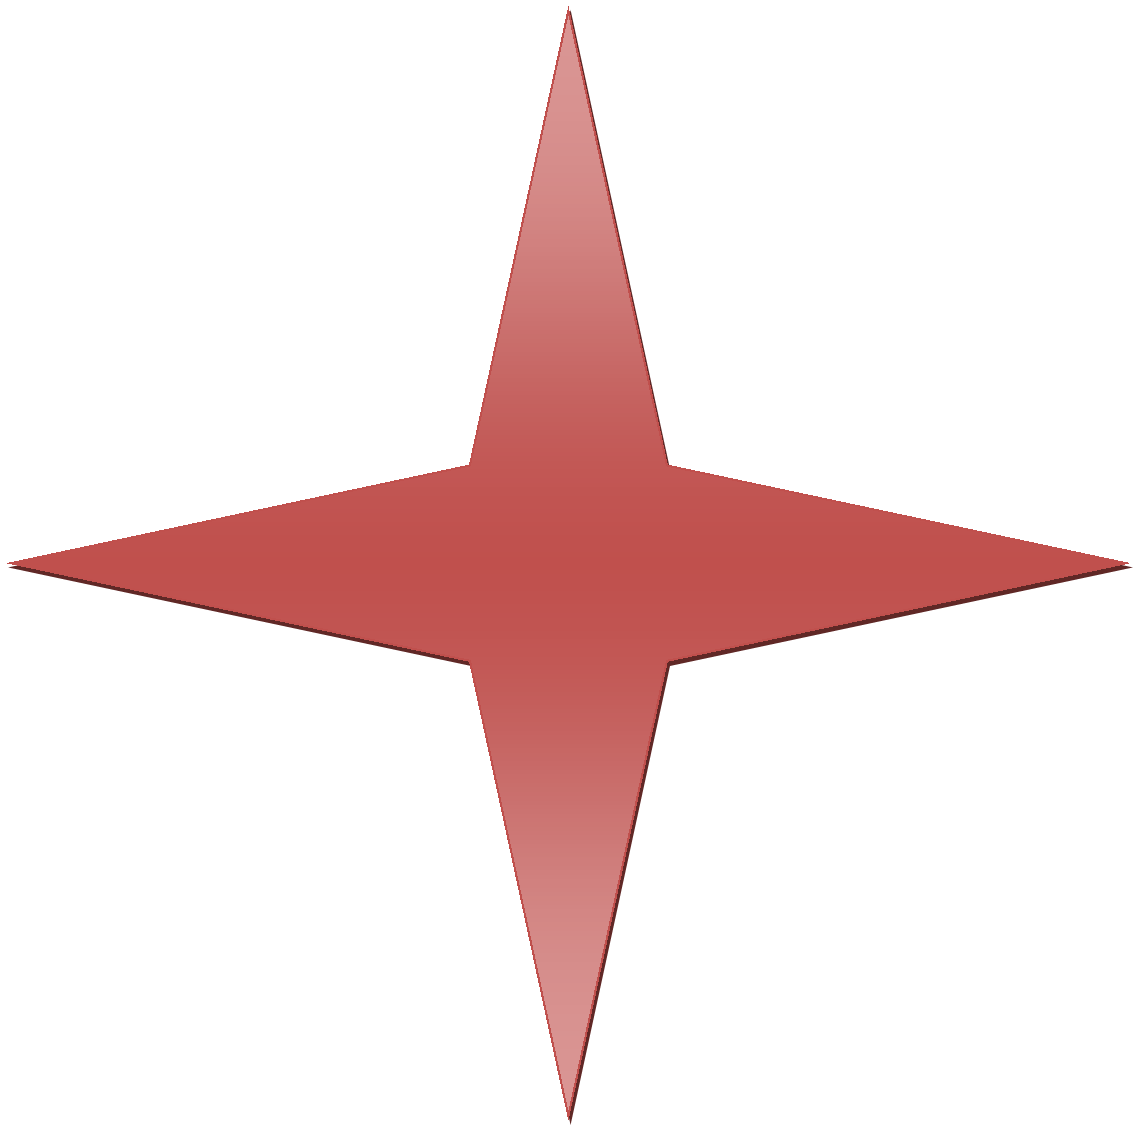 The Red Point Star Logo - File:Red Gradient 4 Point Star.png - Wikimedia Commons